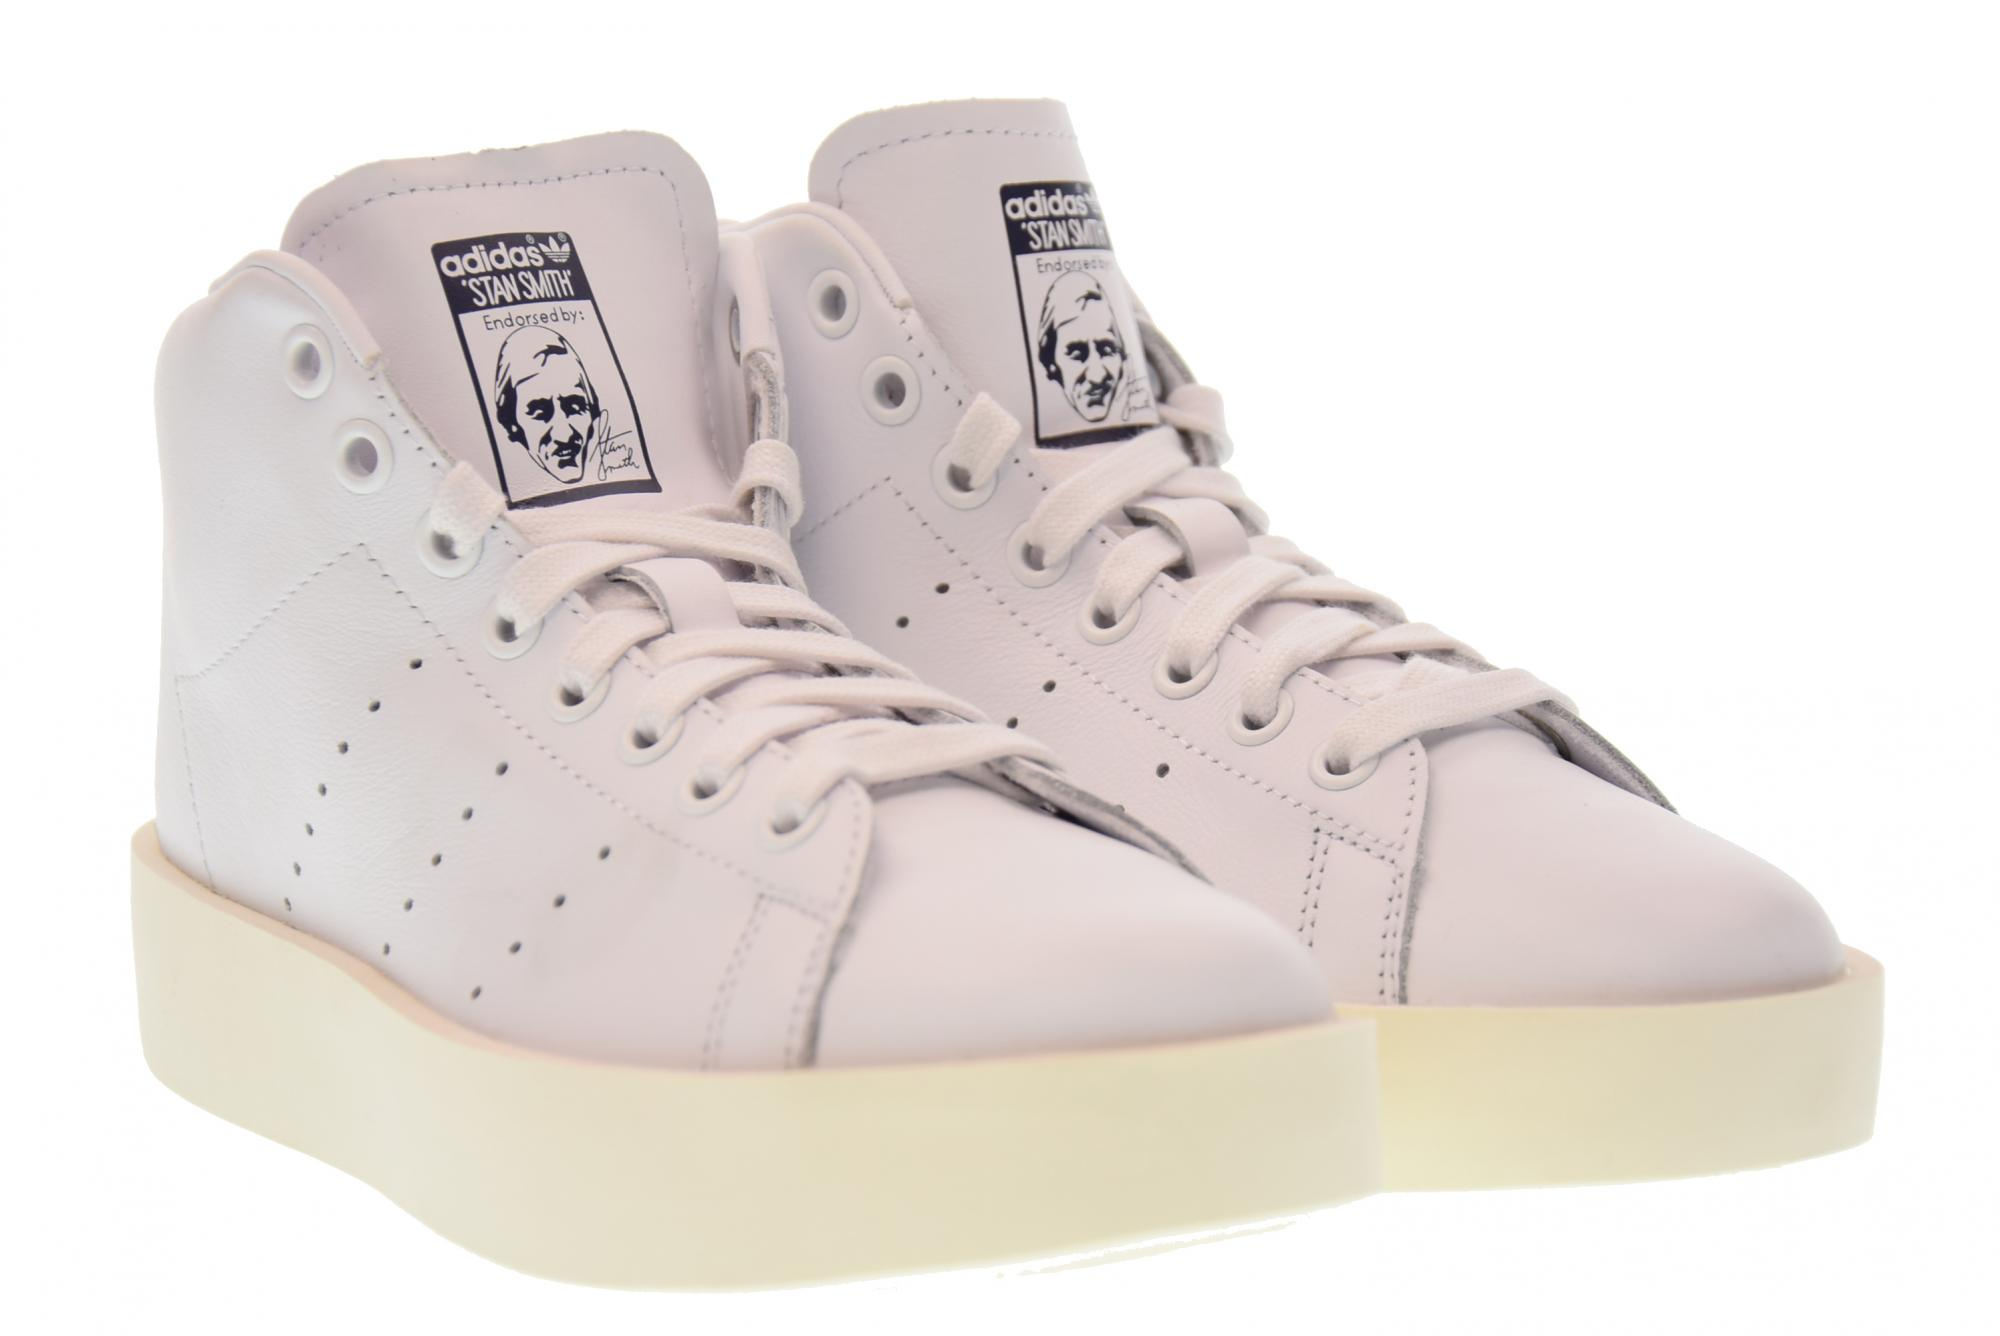 adidas donna scarpe stan smith alte